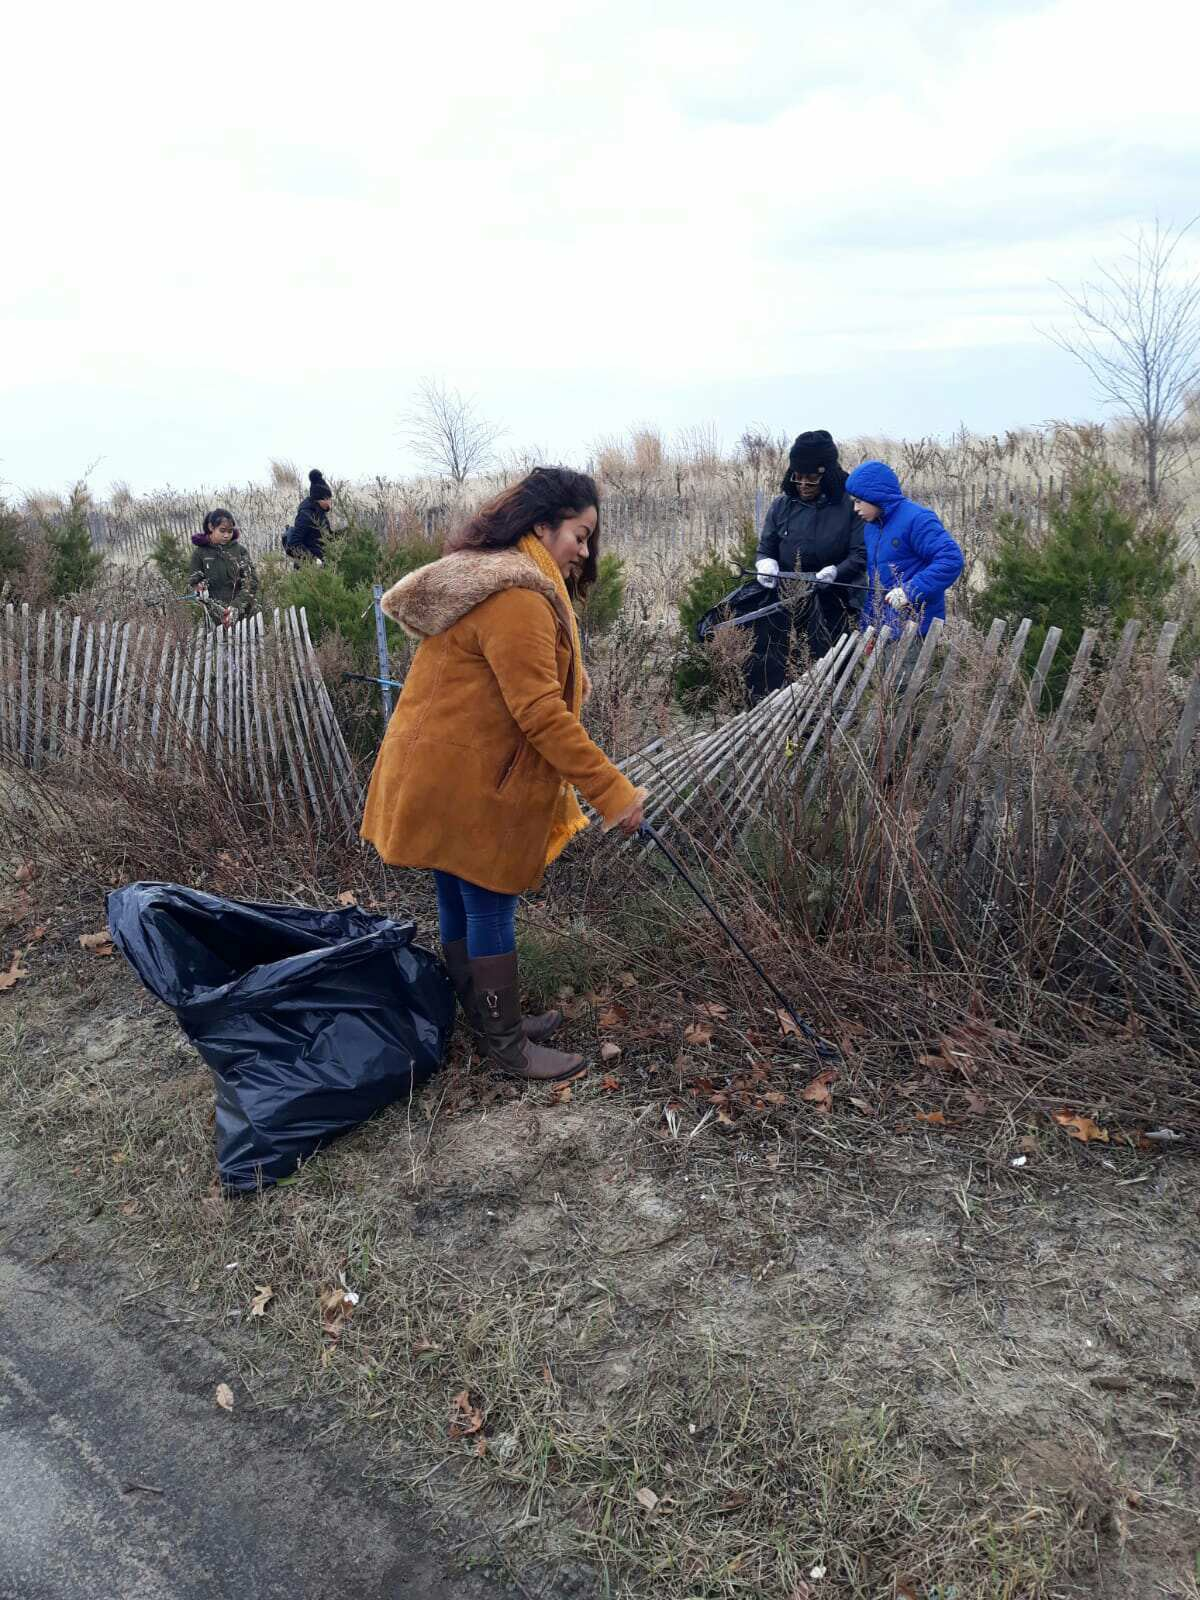 Plumb Beach Clean-up in Conjunction with the Jamaica Bay Rockaway Parks Conservation, American Littoral Society and National Parks Conservation.